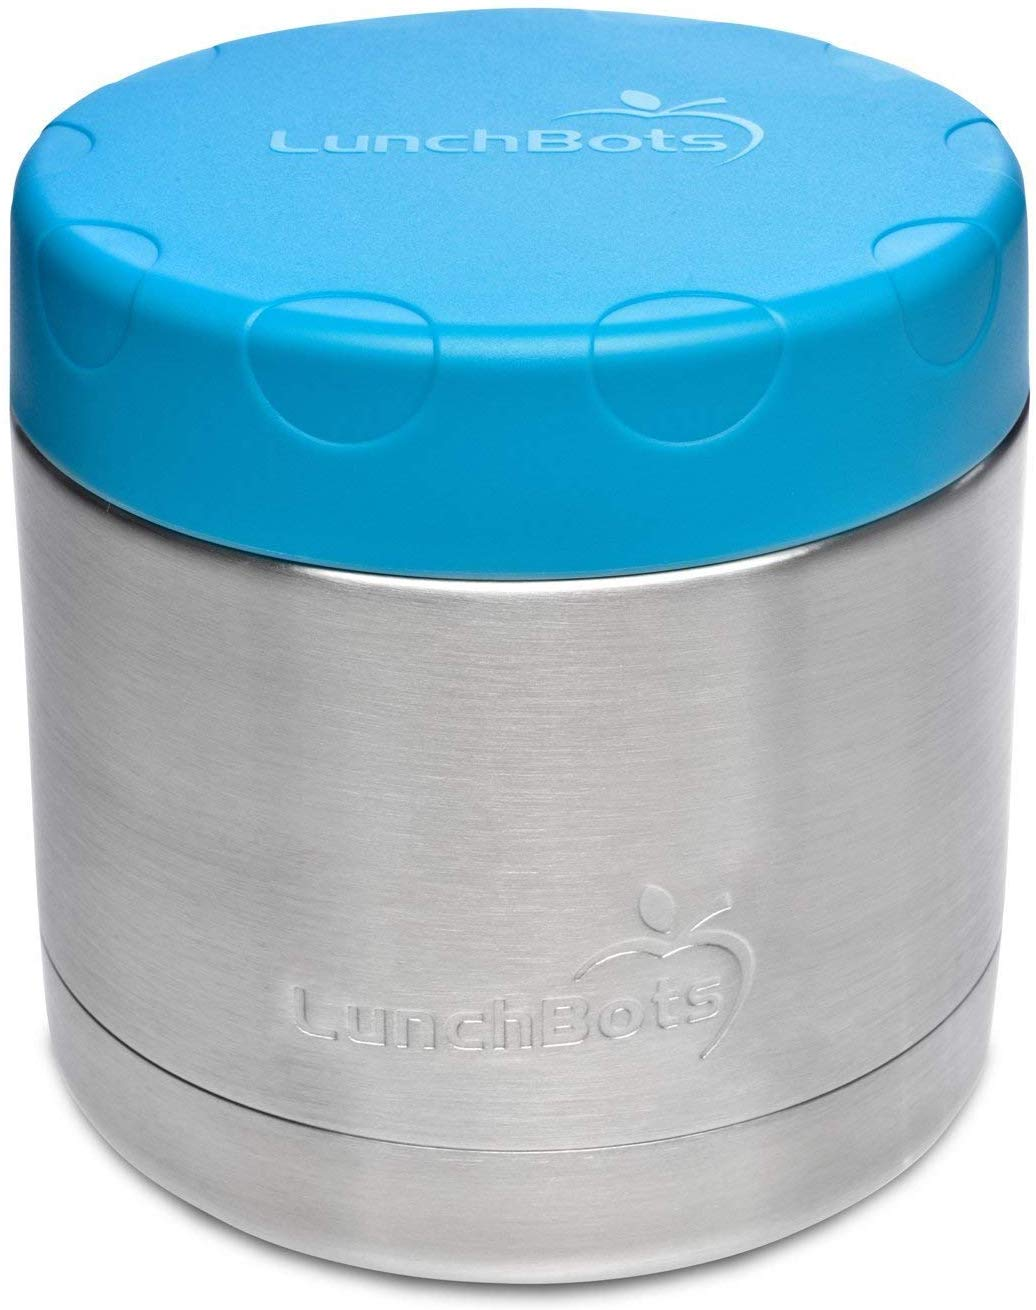 Review of LunchBots 16oz Thermal Stainless Steel Wide Mouth Thermos